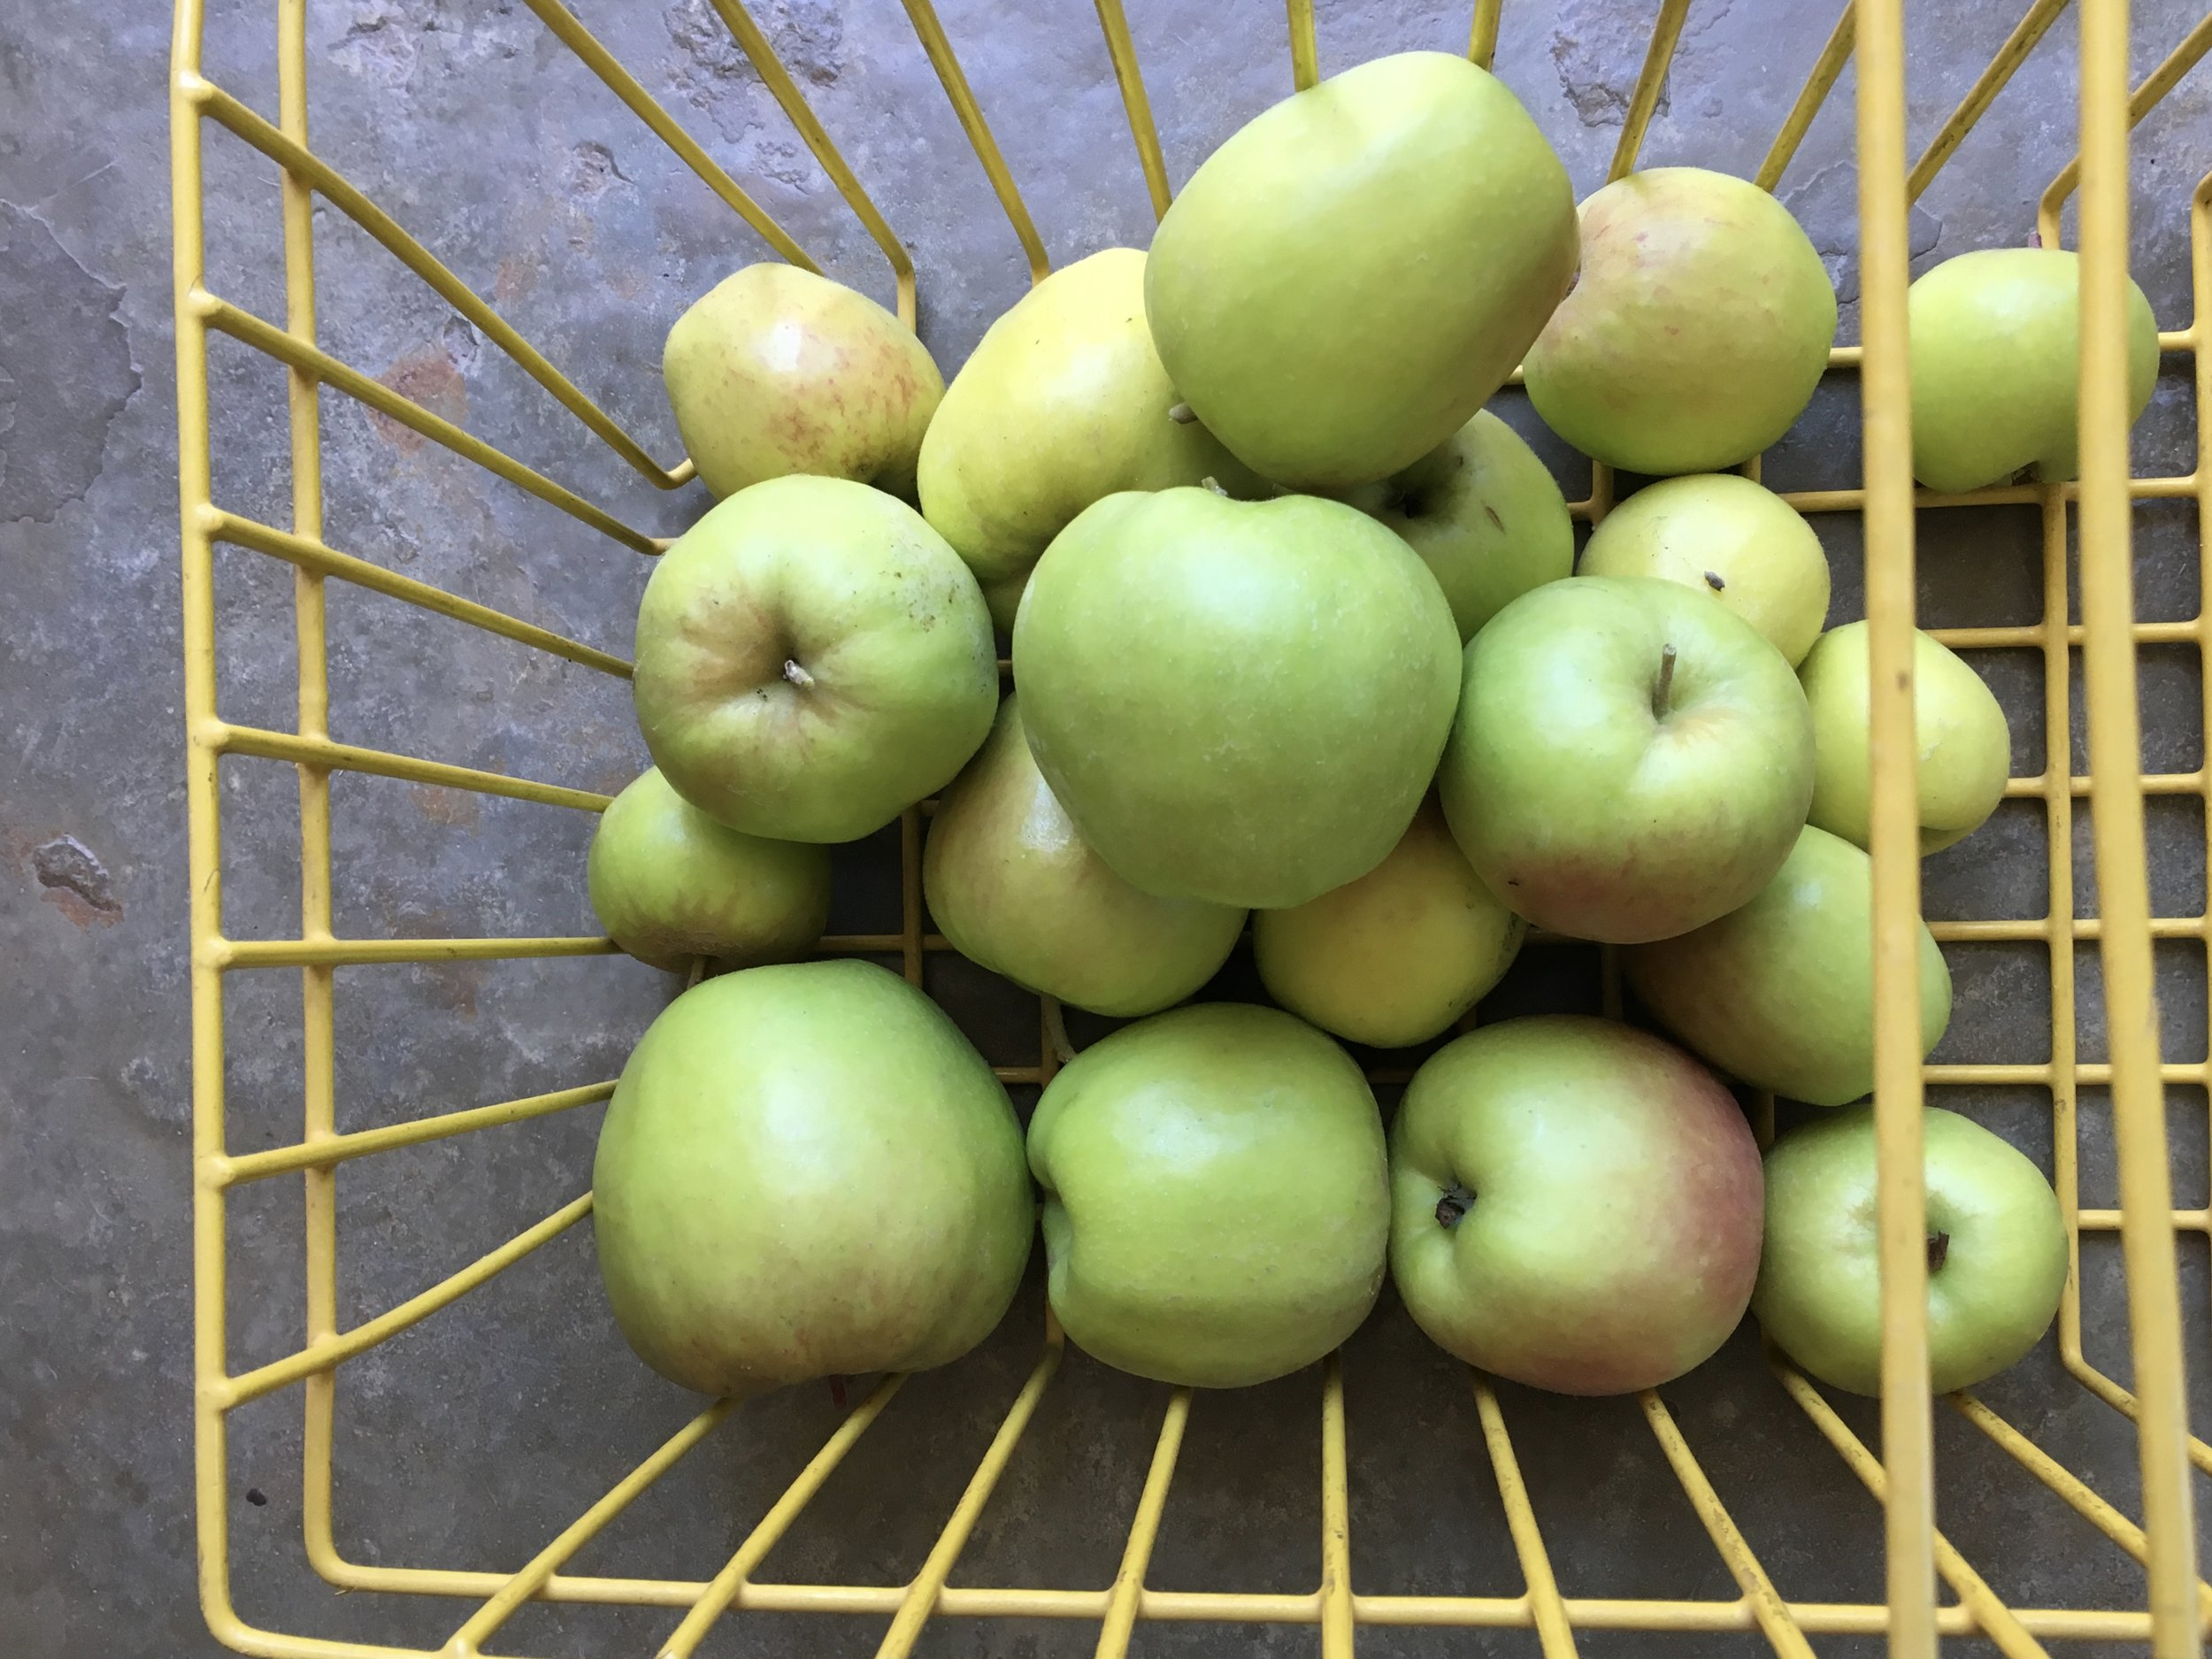 The last of the 'Dorsett Golden' apple crop harvested recently.